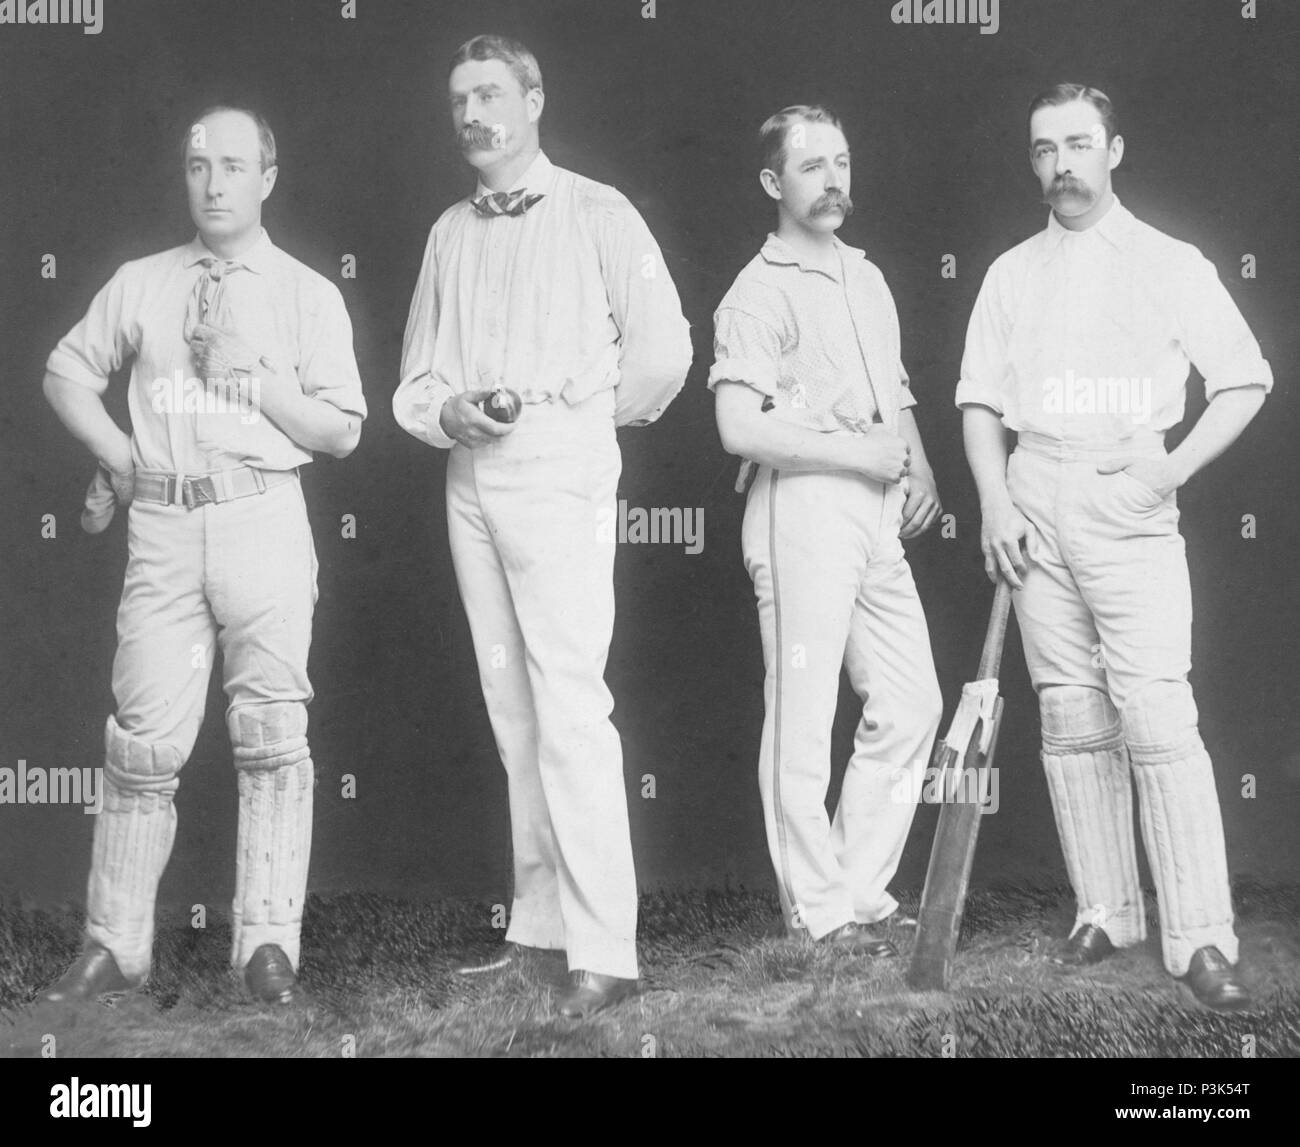 Cricket, four cricketers pose, English Cricket - Stock Image